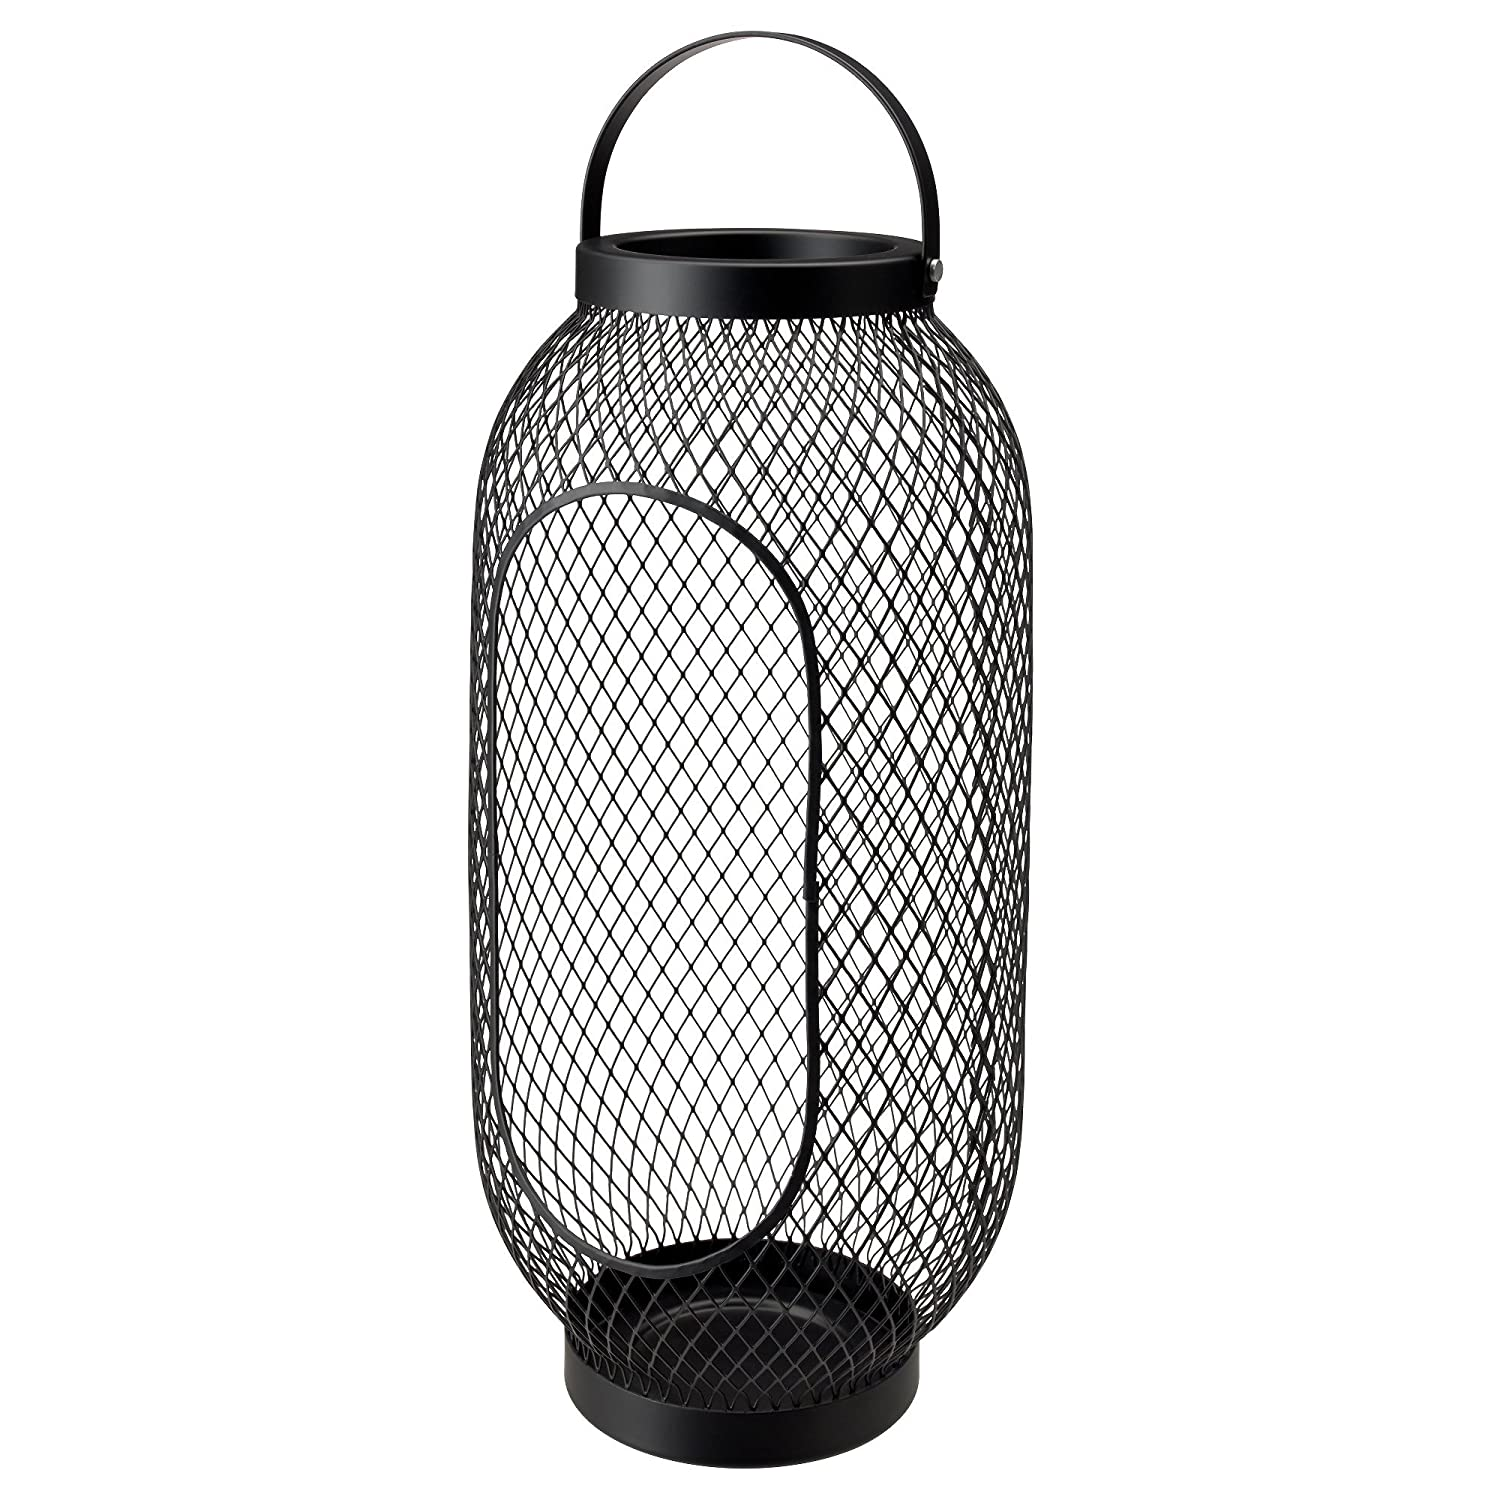 ZigZag Trading Ltd IKEA TOPPIG Lantern for block candle Black